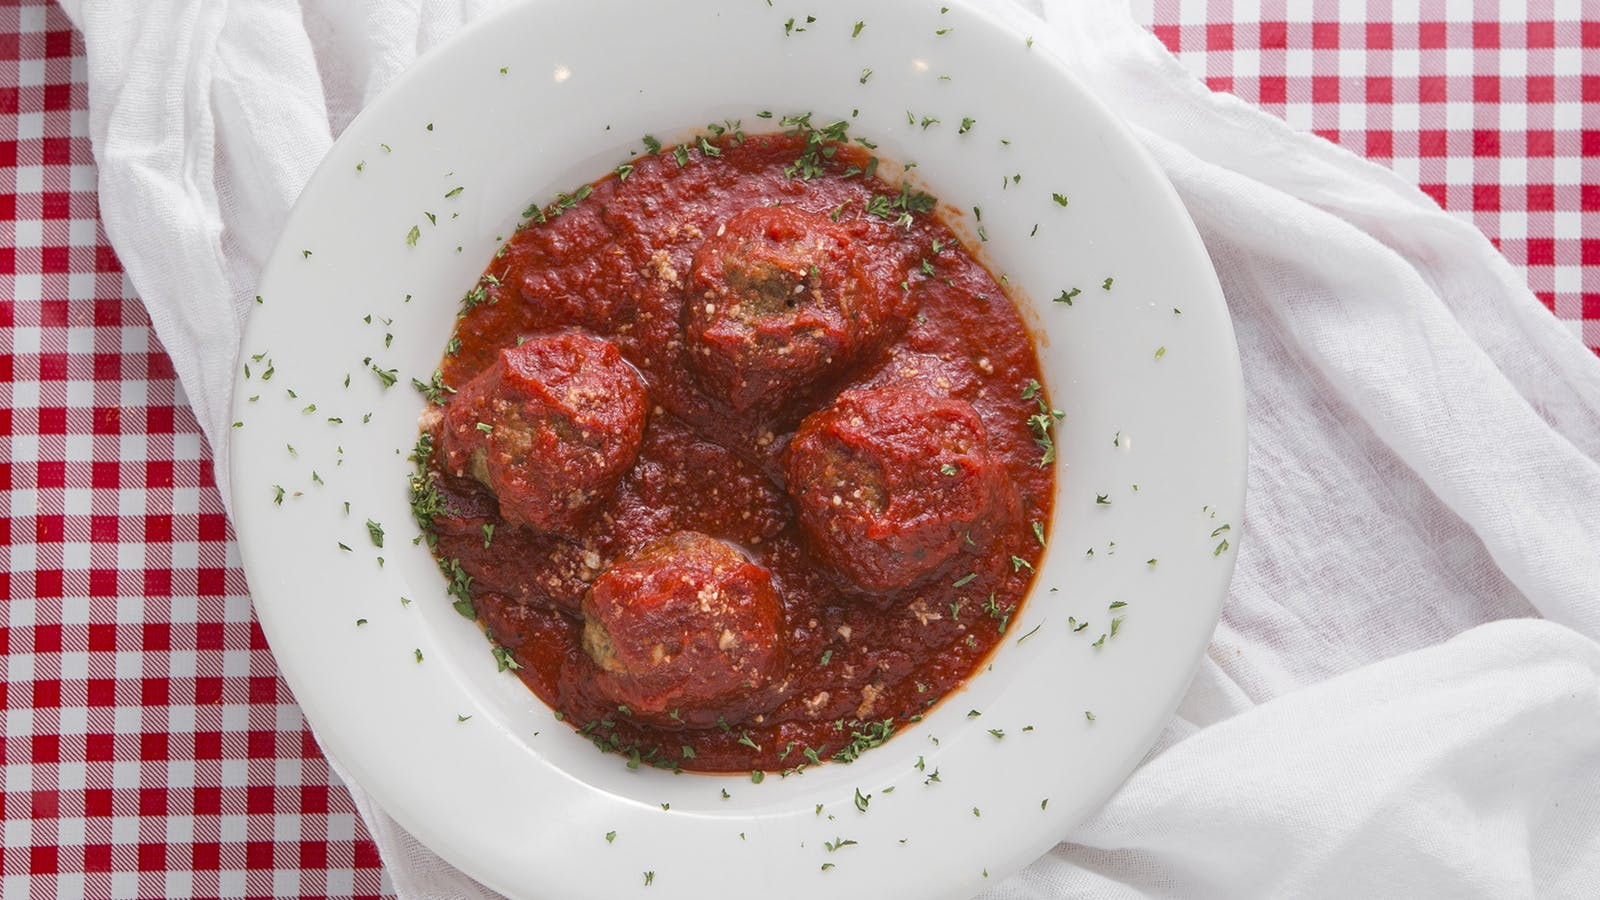 Side of Meatballs from Ameci Pizza & Pasta - Lake Forest in Lake Forest, CA